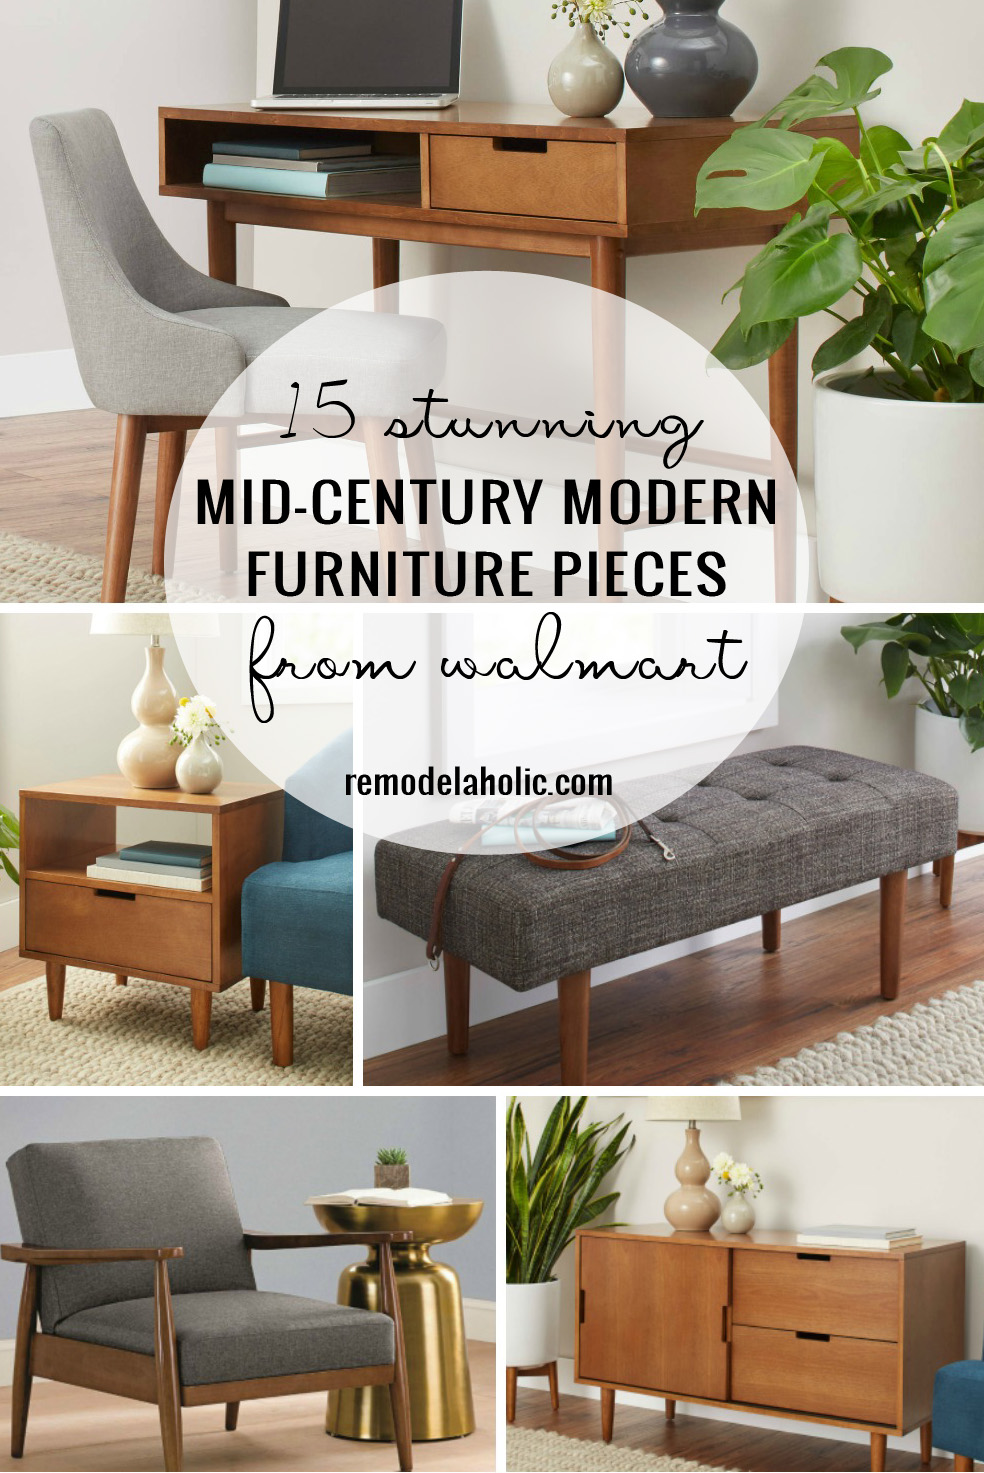 Remodelaholic | 15 Stunning Mid Century Modern Furniture Pieces From Walmart